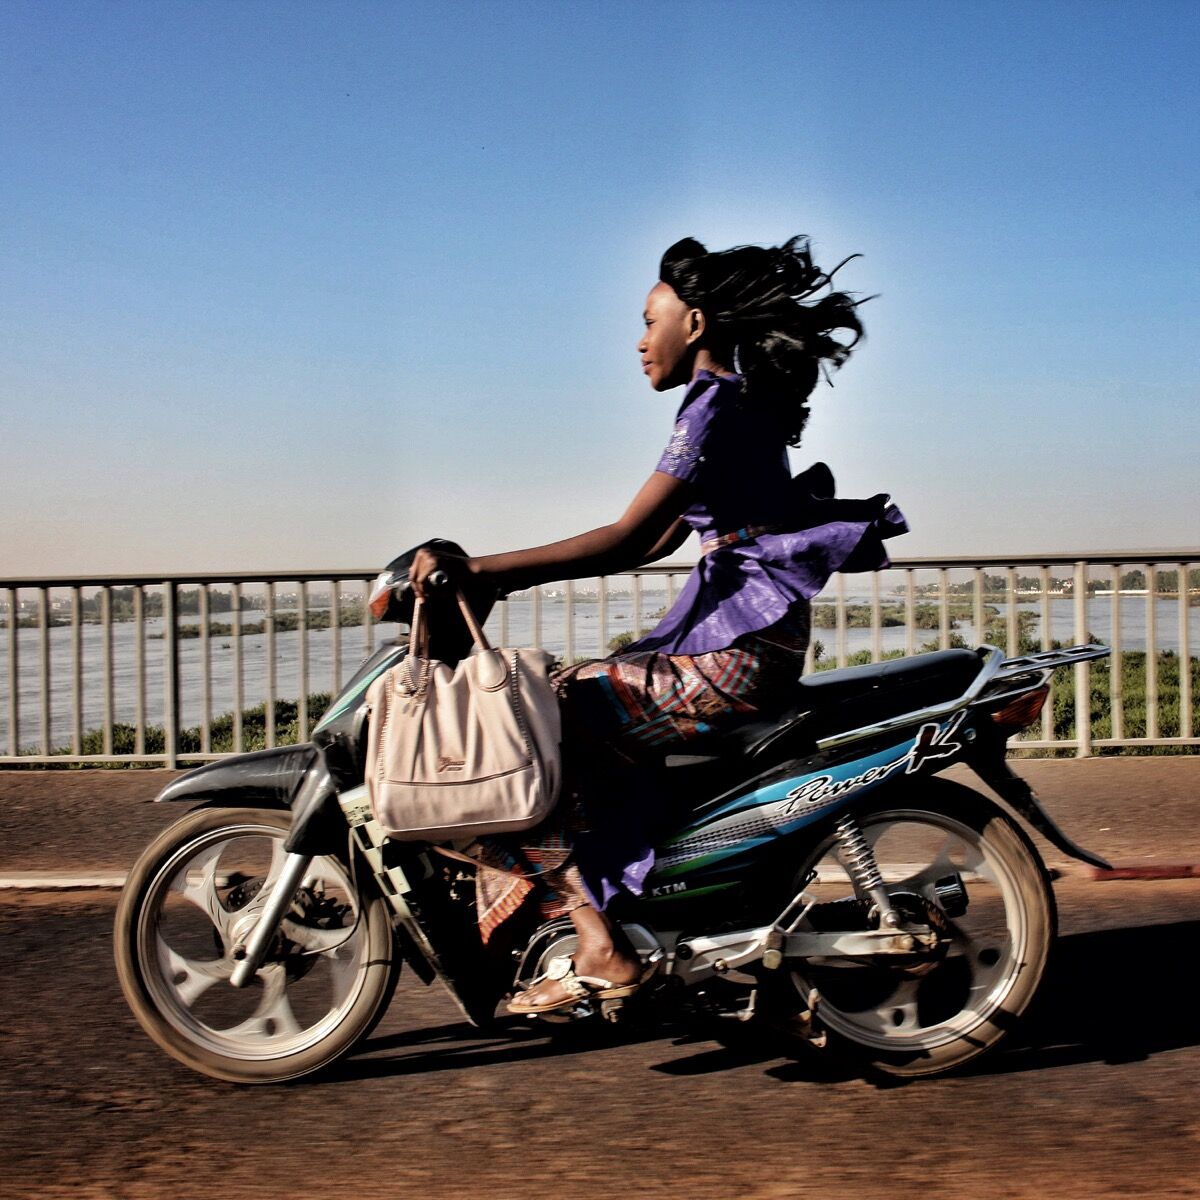 Riding over the Niger River in Bamako, Mali. Photo by @janehahn.